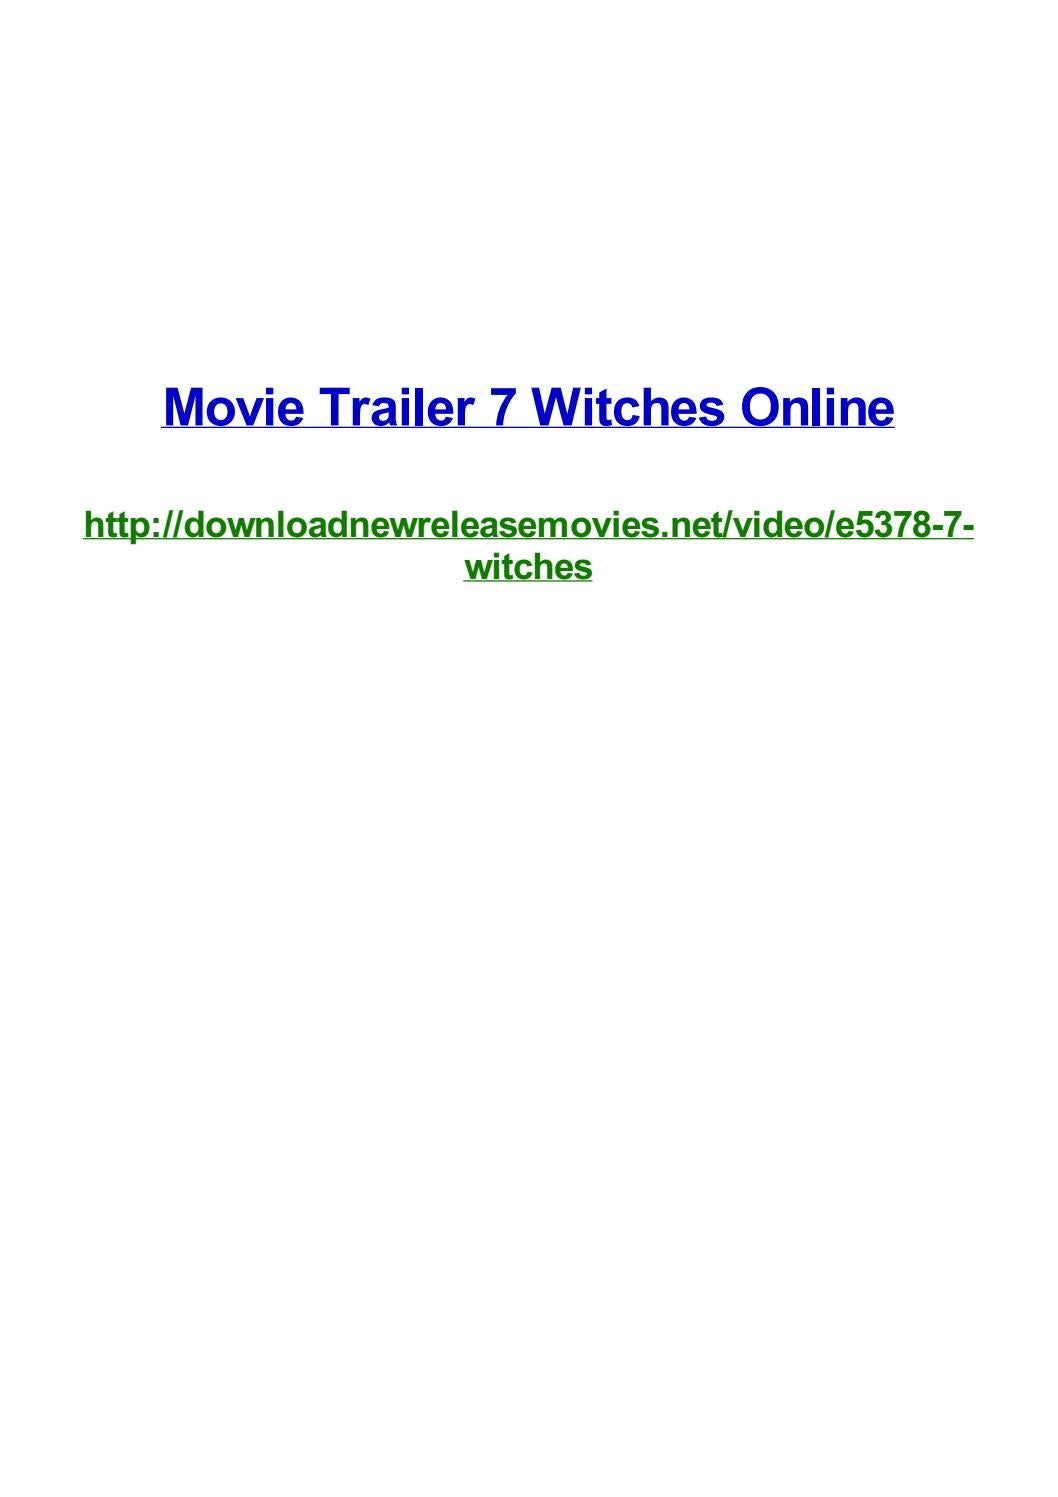 Movie trailer 7 witches online by Frank Seamons - issuu